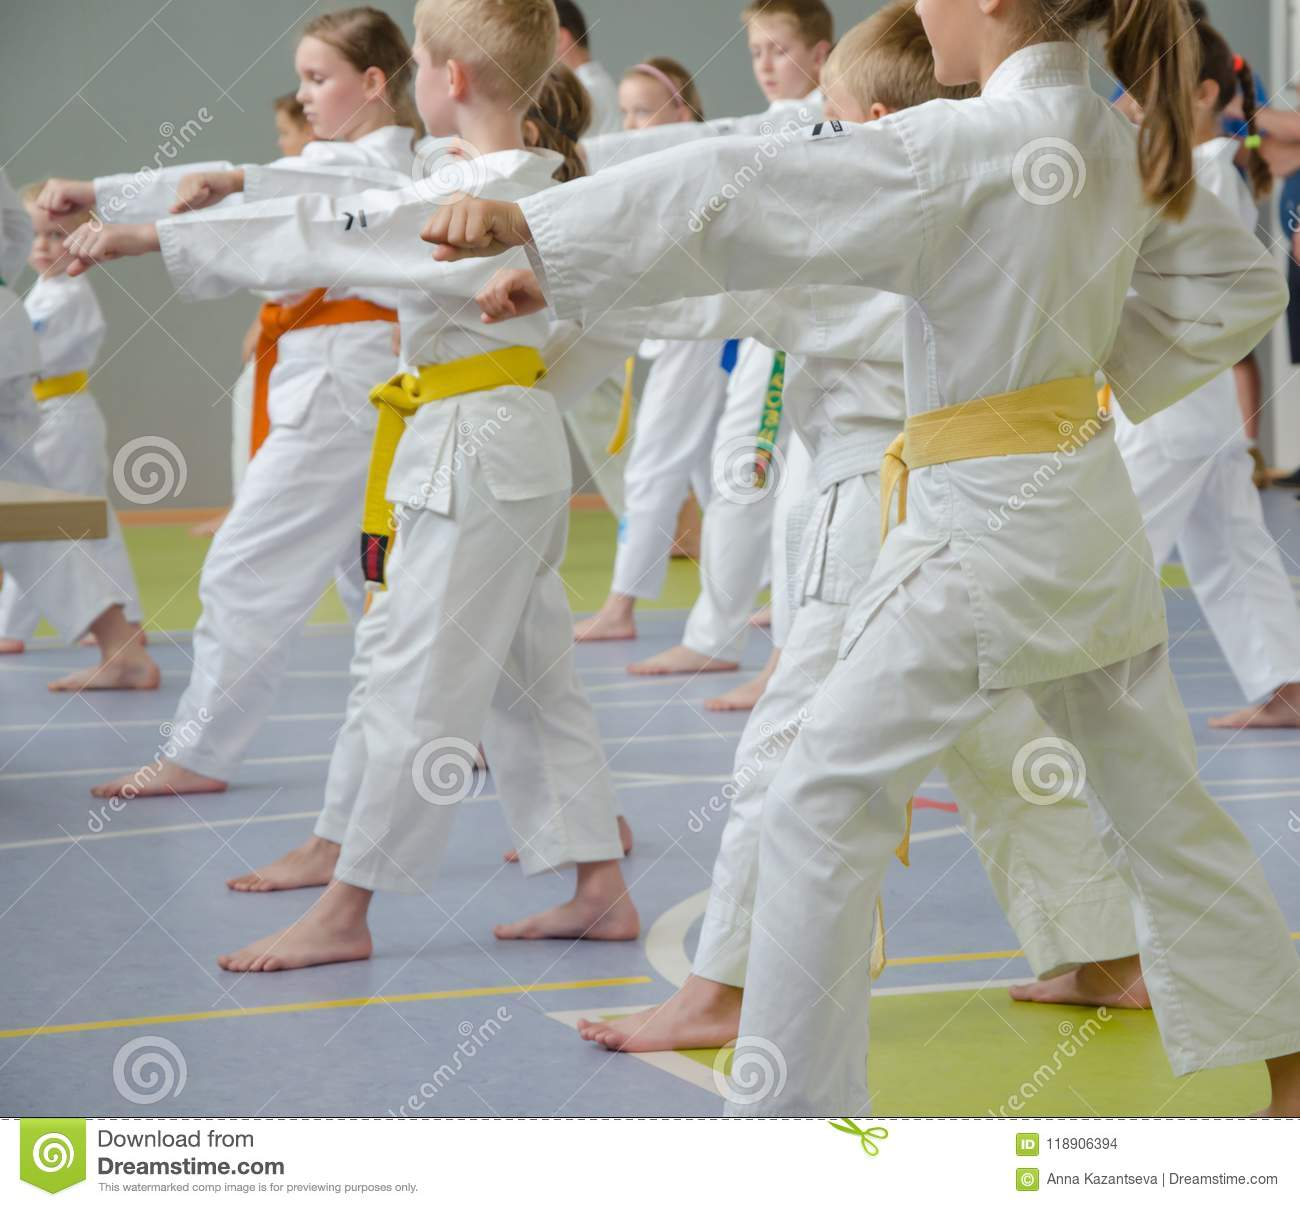 Karate training. Kids of different ages practice martial moves